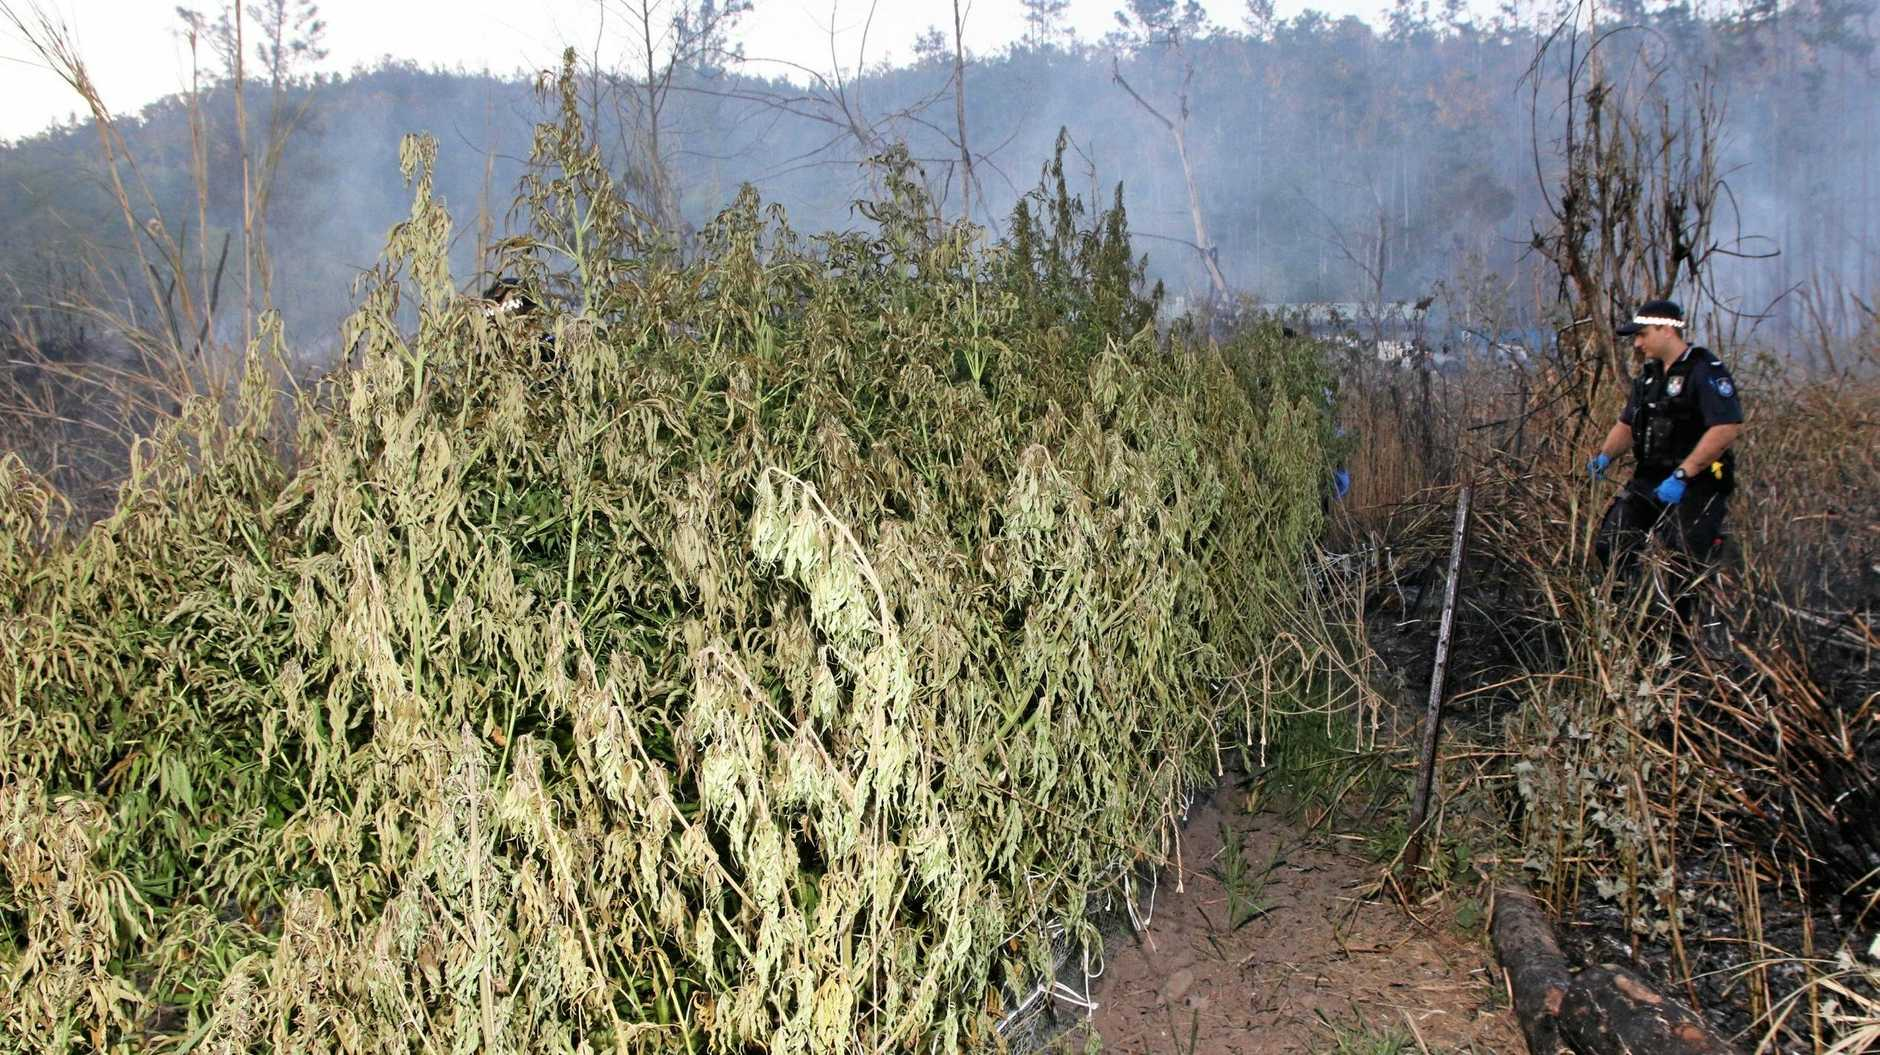 UP IN SMOKE: One of the cannabis crops allegedly discovered by emergency services during a grass fire last Friday.